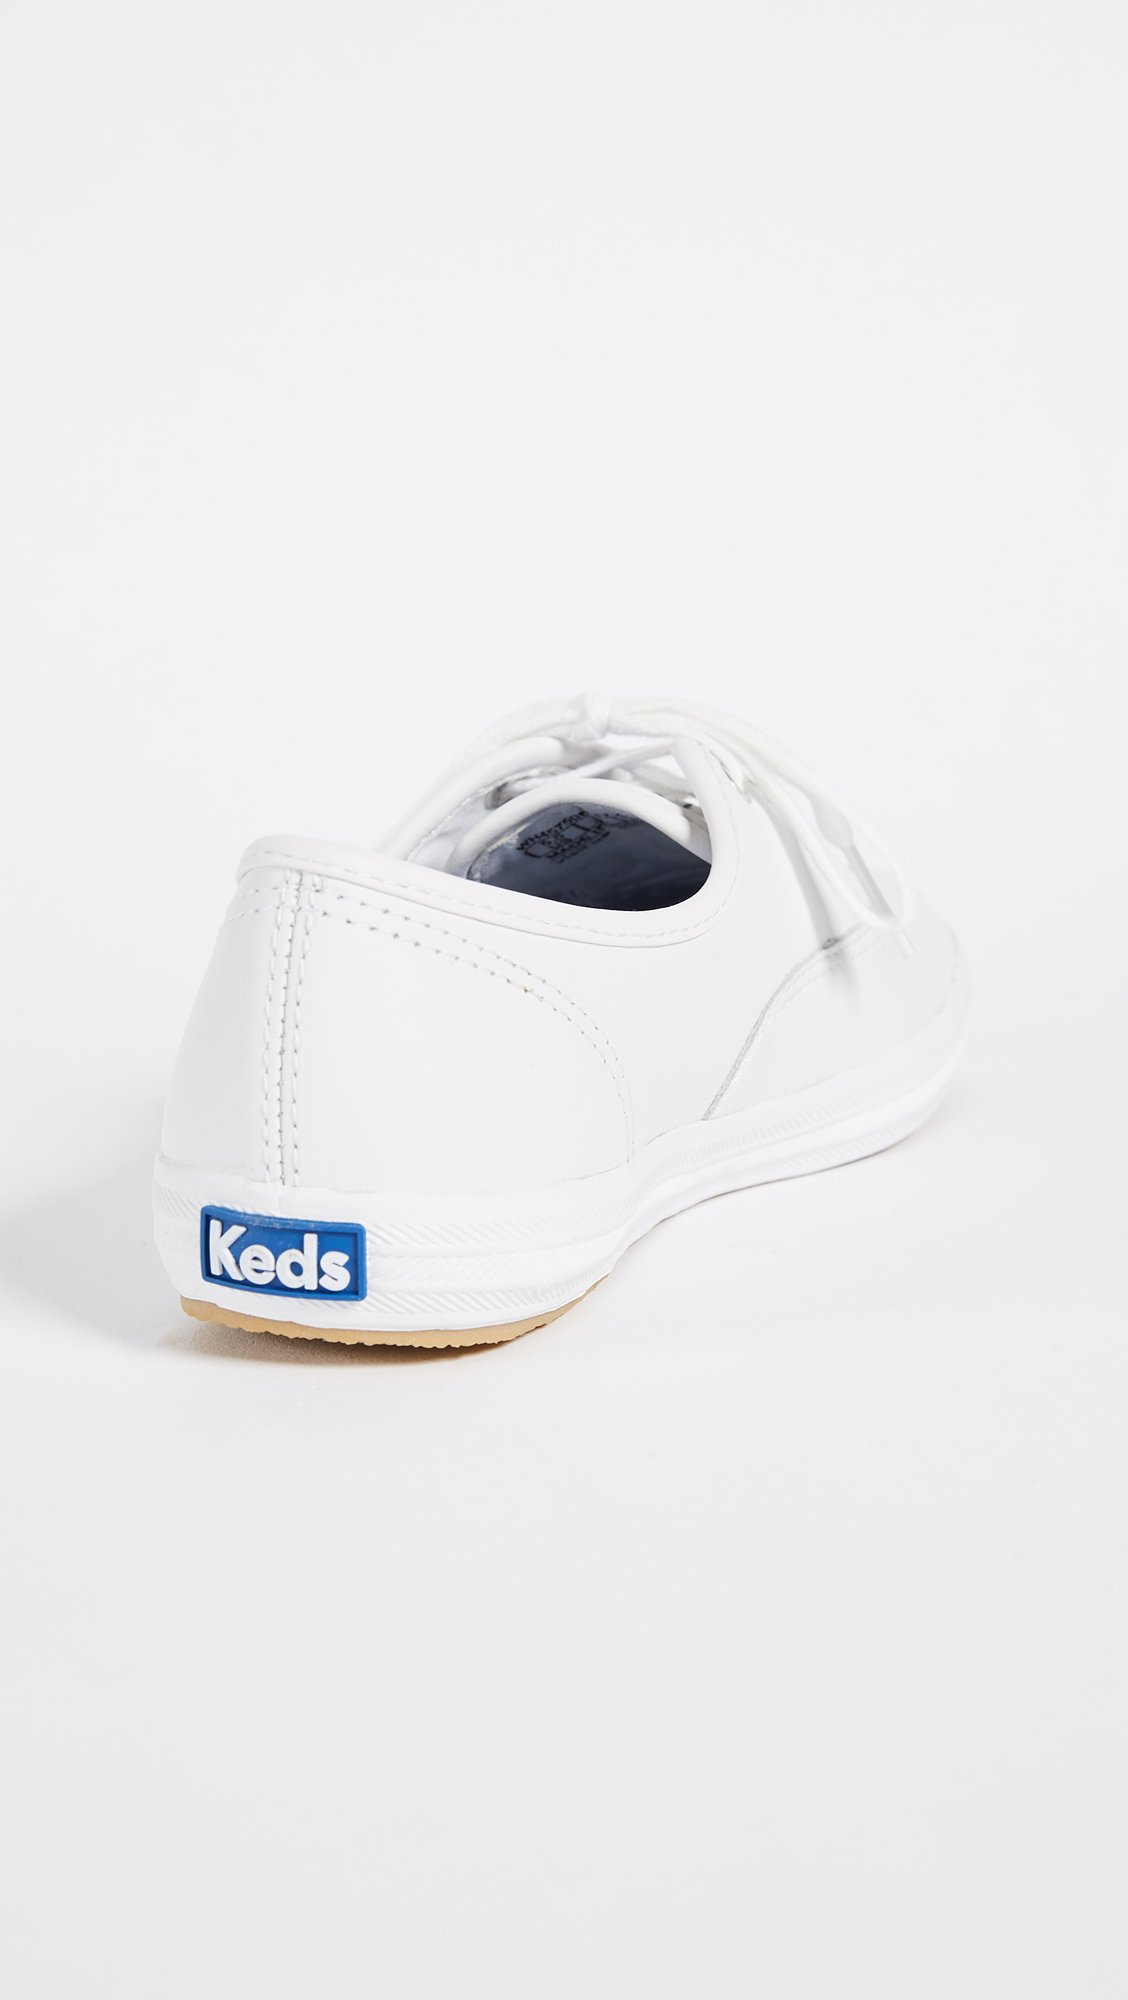 cff50ca2cfc1b Keds Champion Core Sneakers